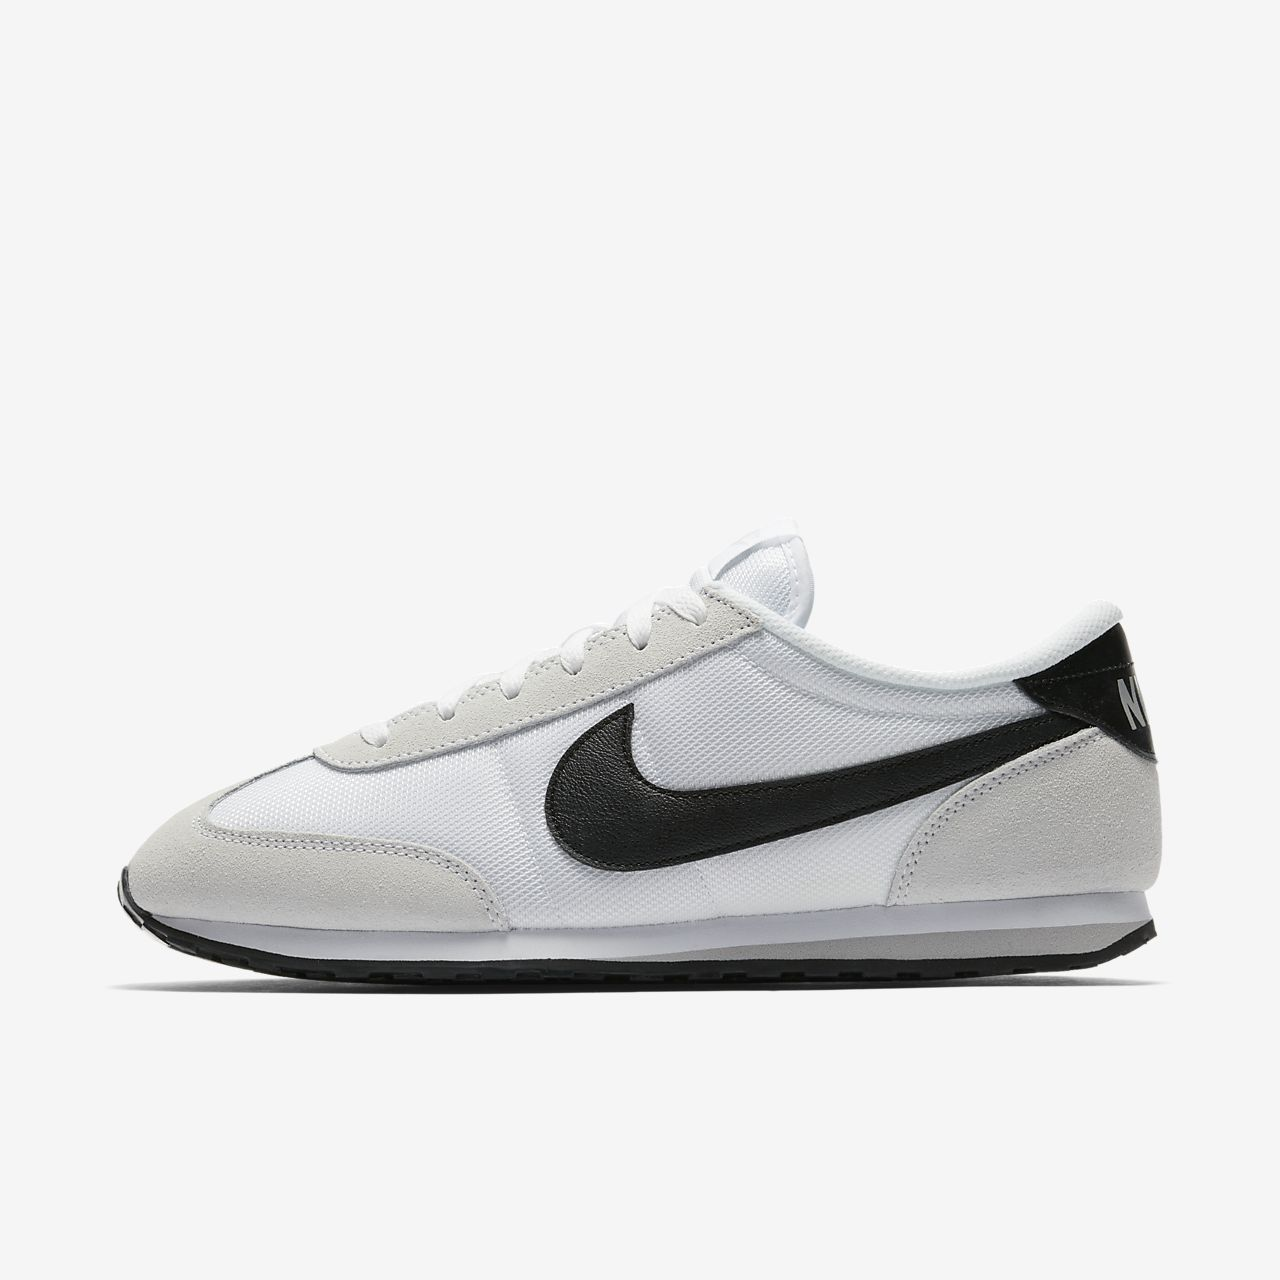 size 40 0024a db37d Chaussure Nike Mach Runner pour Homme